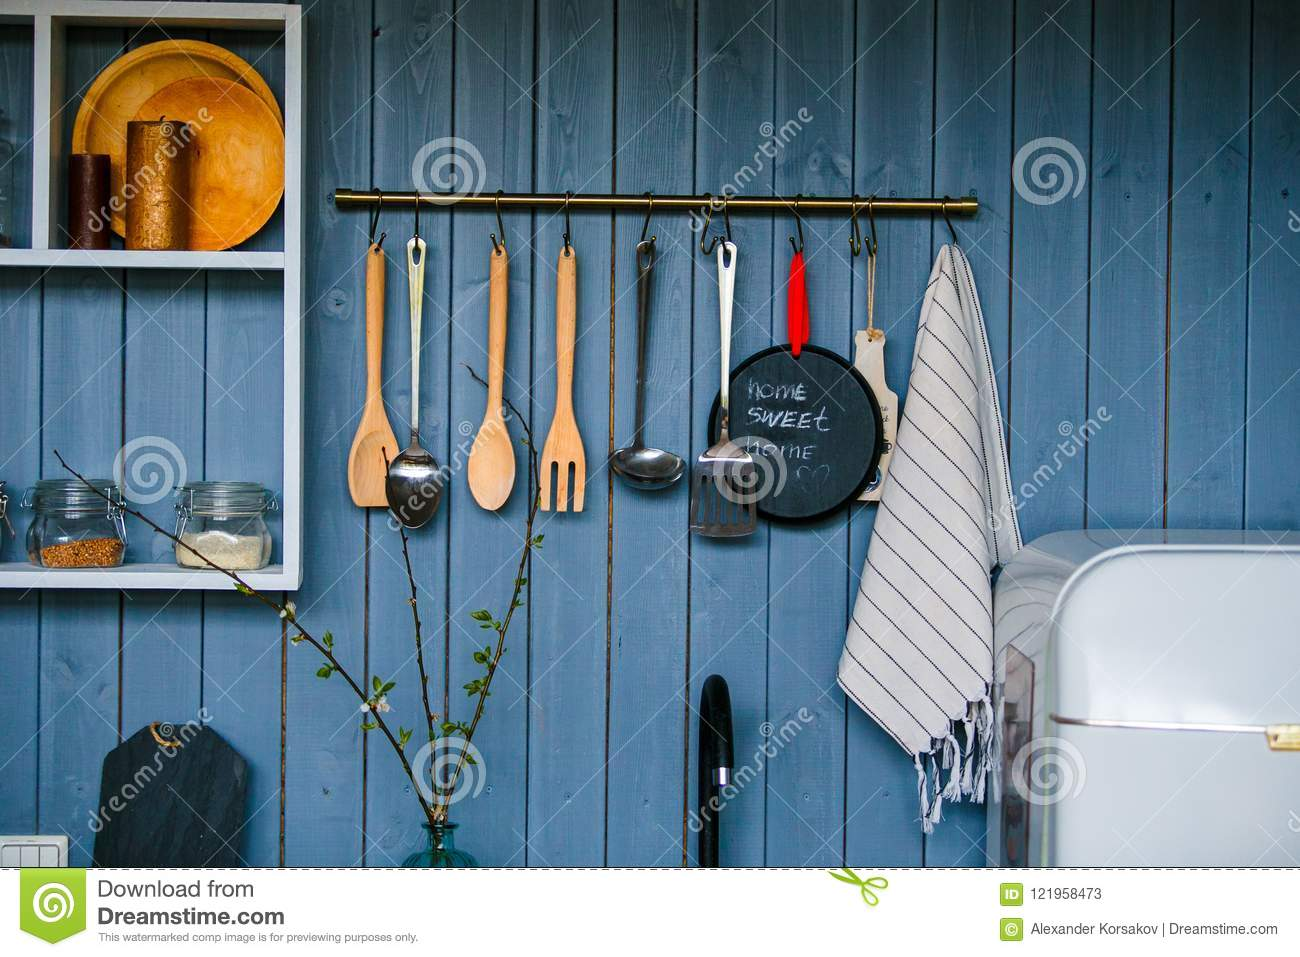 Cooking utensils hanging on wooden wall in the kitchen transparent glass jars for grain